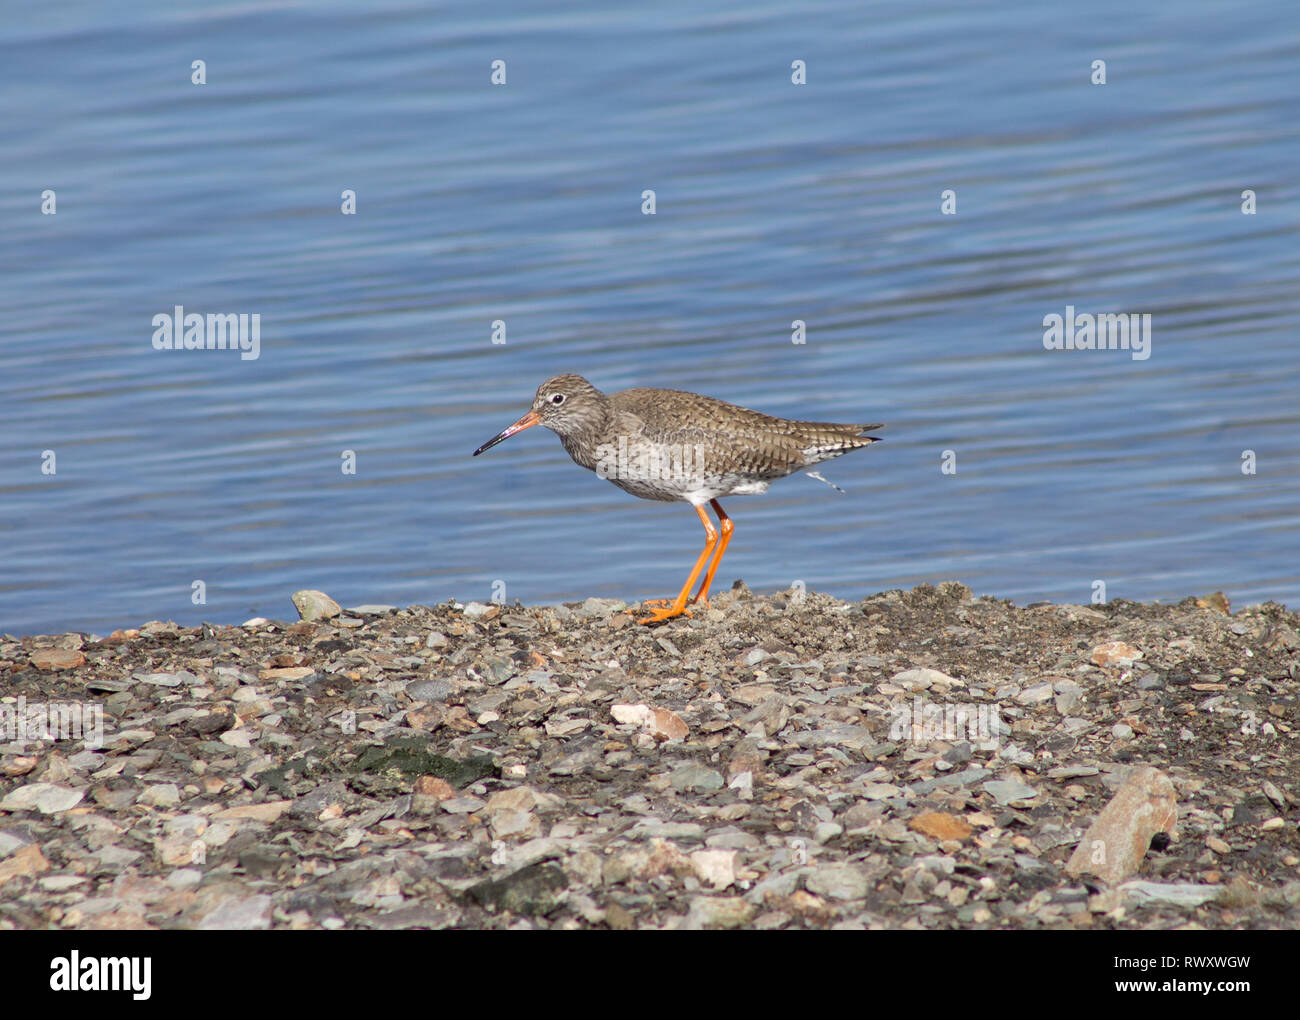 redshank-tringa-totanus-feeding-in-shallow-water-RWXWGW.jpg